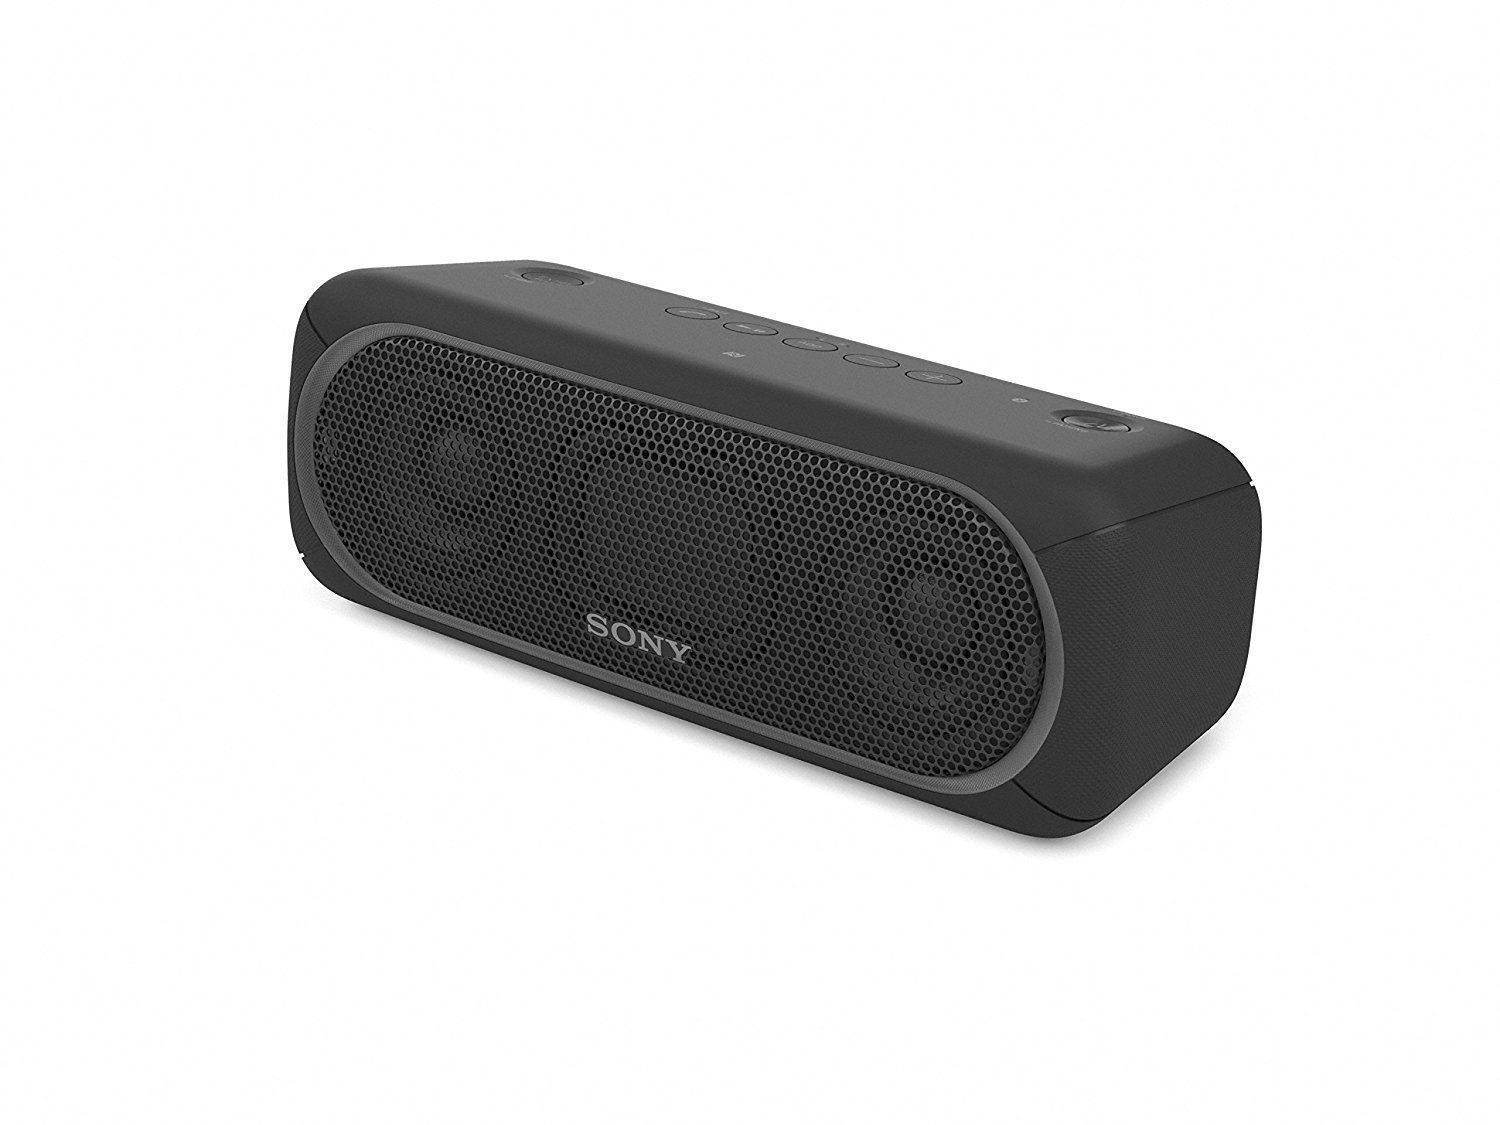 1d1737e5477 Sony SRS-XB30 Portable Wireless Bluetooth Speaker (Black or Blue) Price :  59.99 Ends on : 3 weeks View on eBay